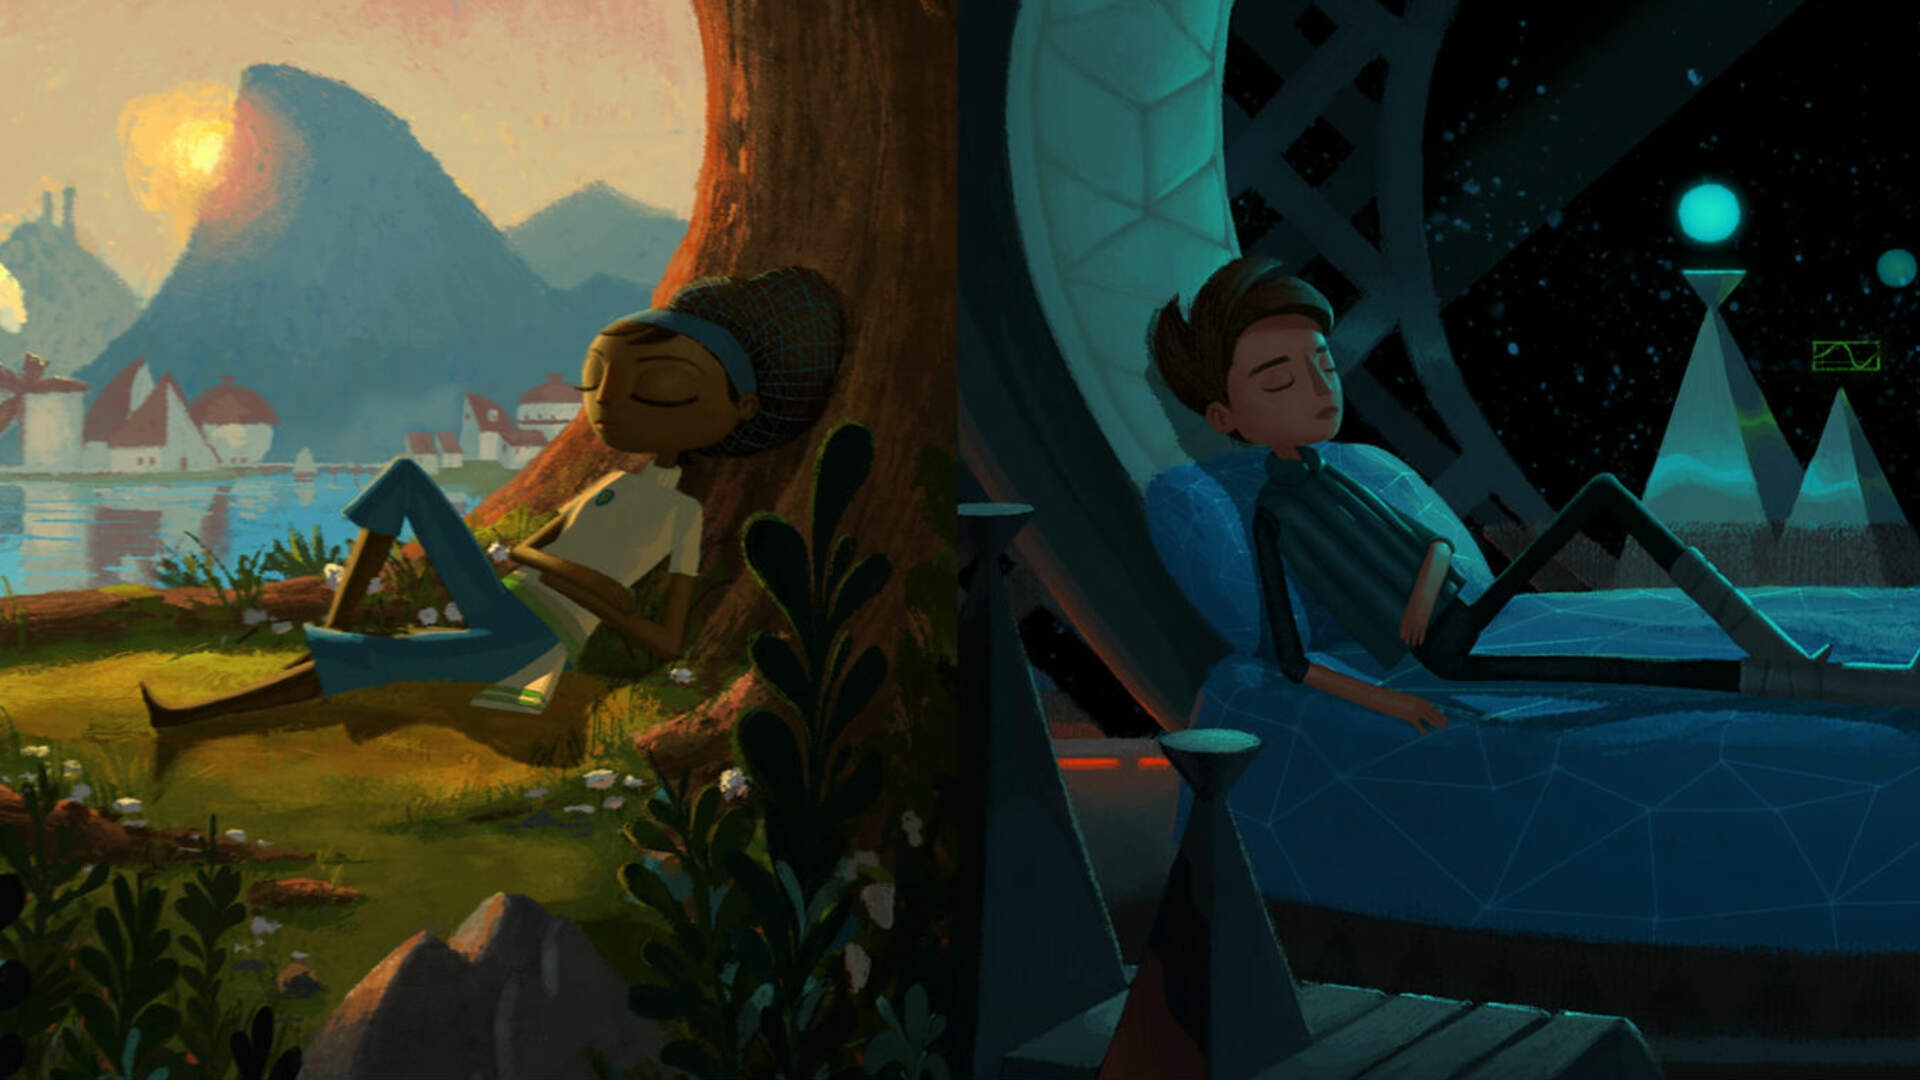 Kickstarting Reality: Broken Age Shows Players the Reality of Game Development